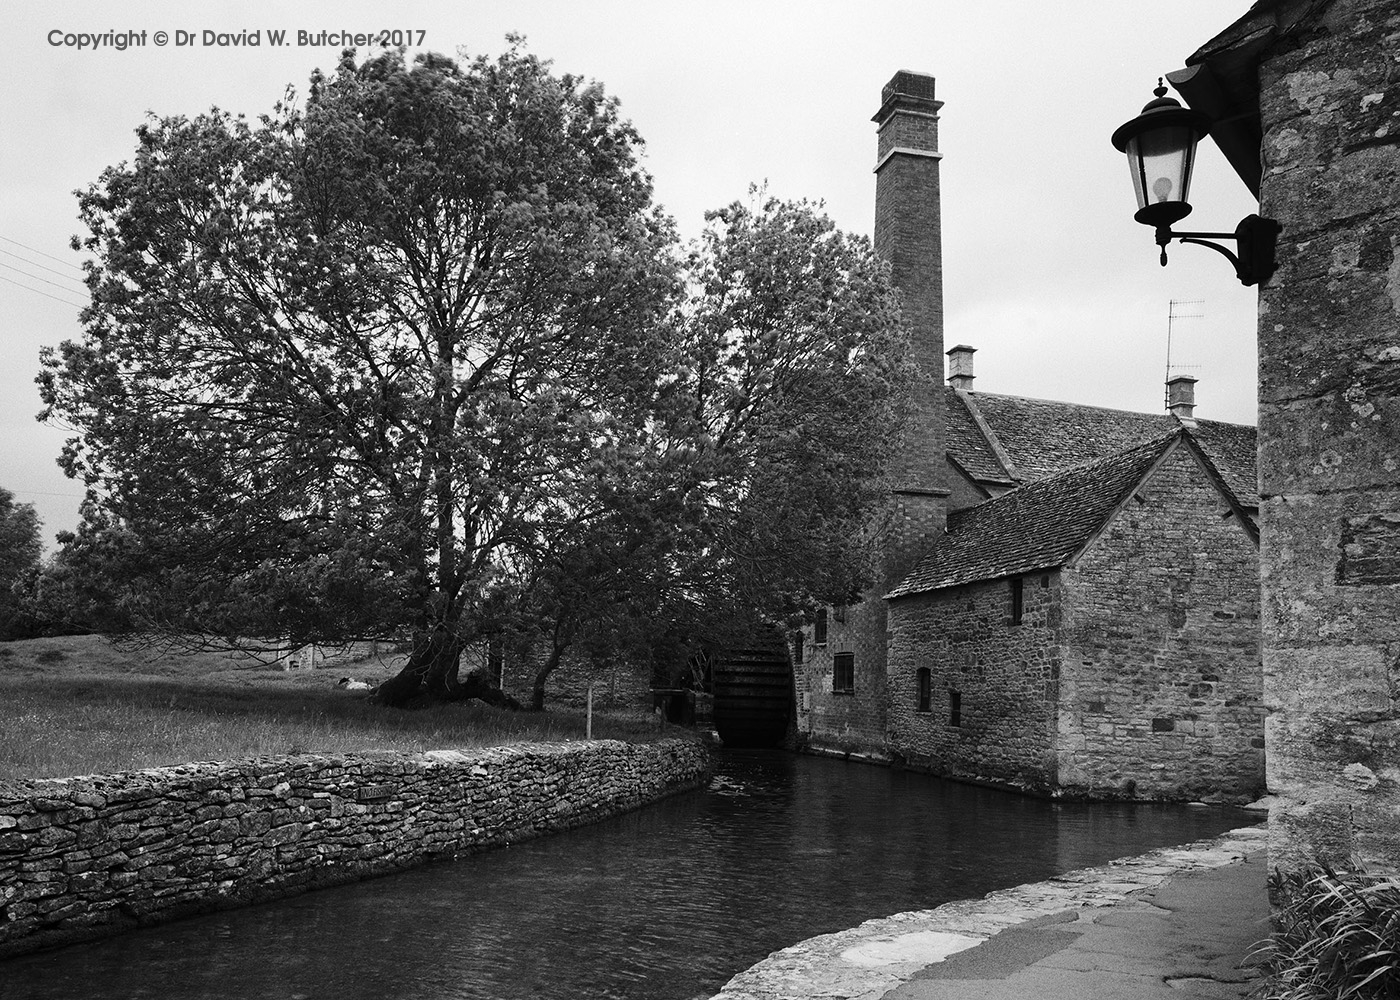 Lower Slaughter Water Mill, Cotswolds, England